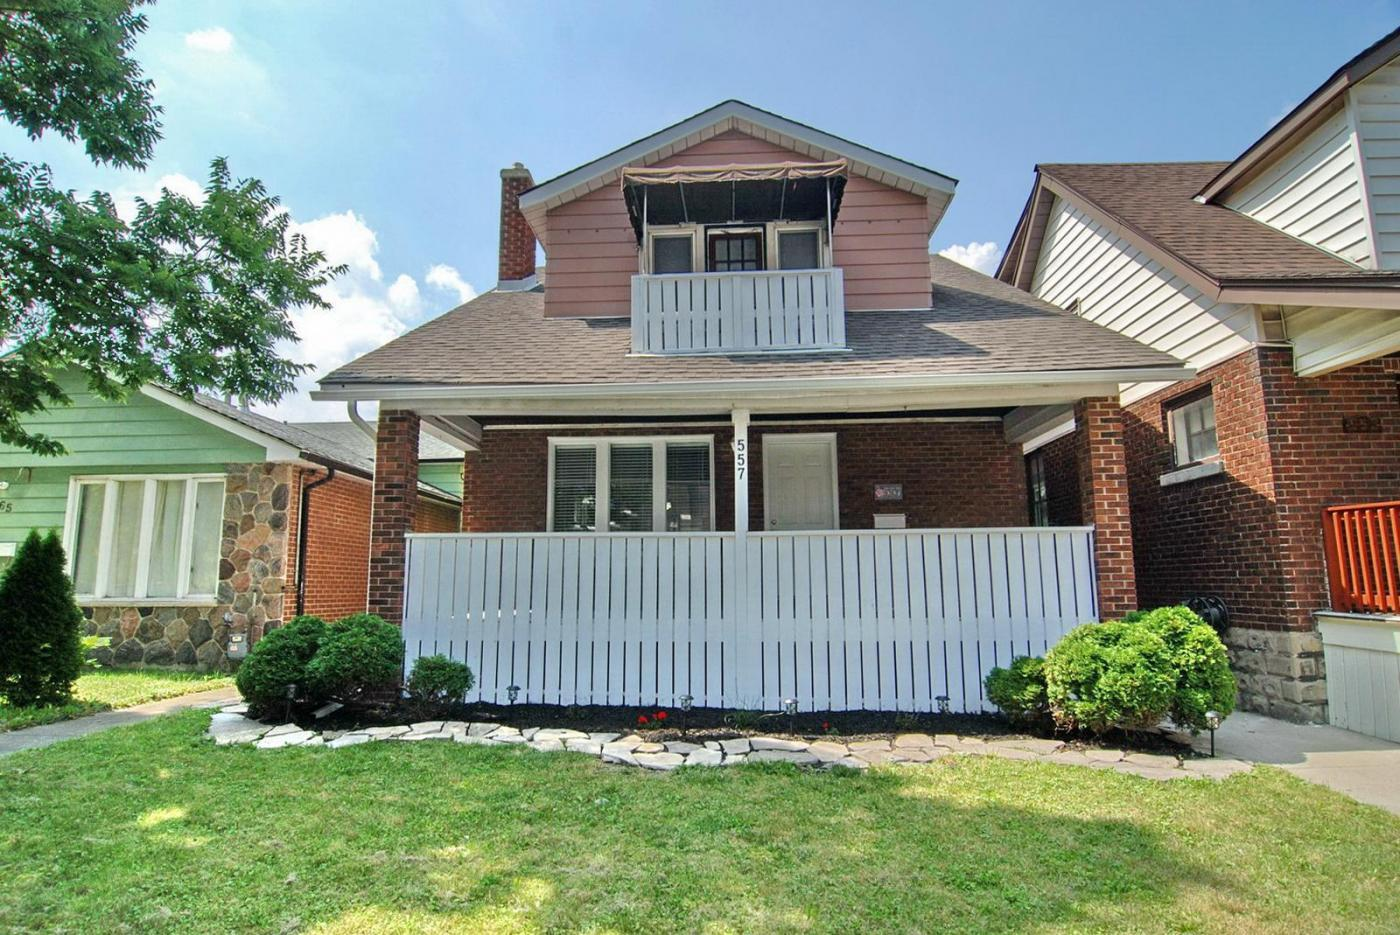 Totally renovated Home in a nice area. Coming Soon...